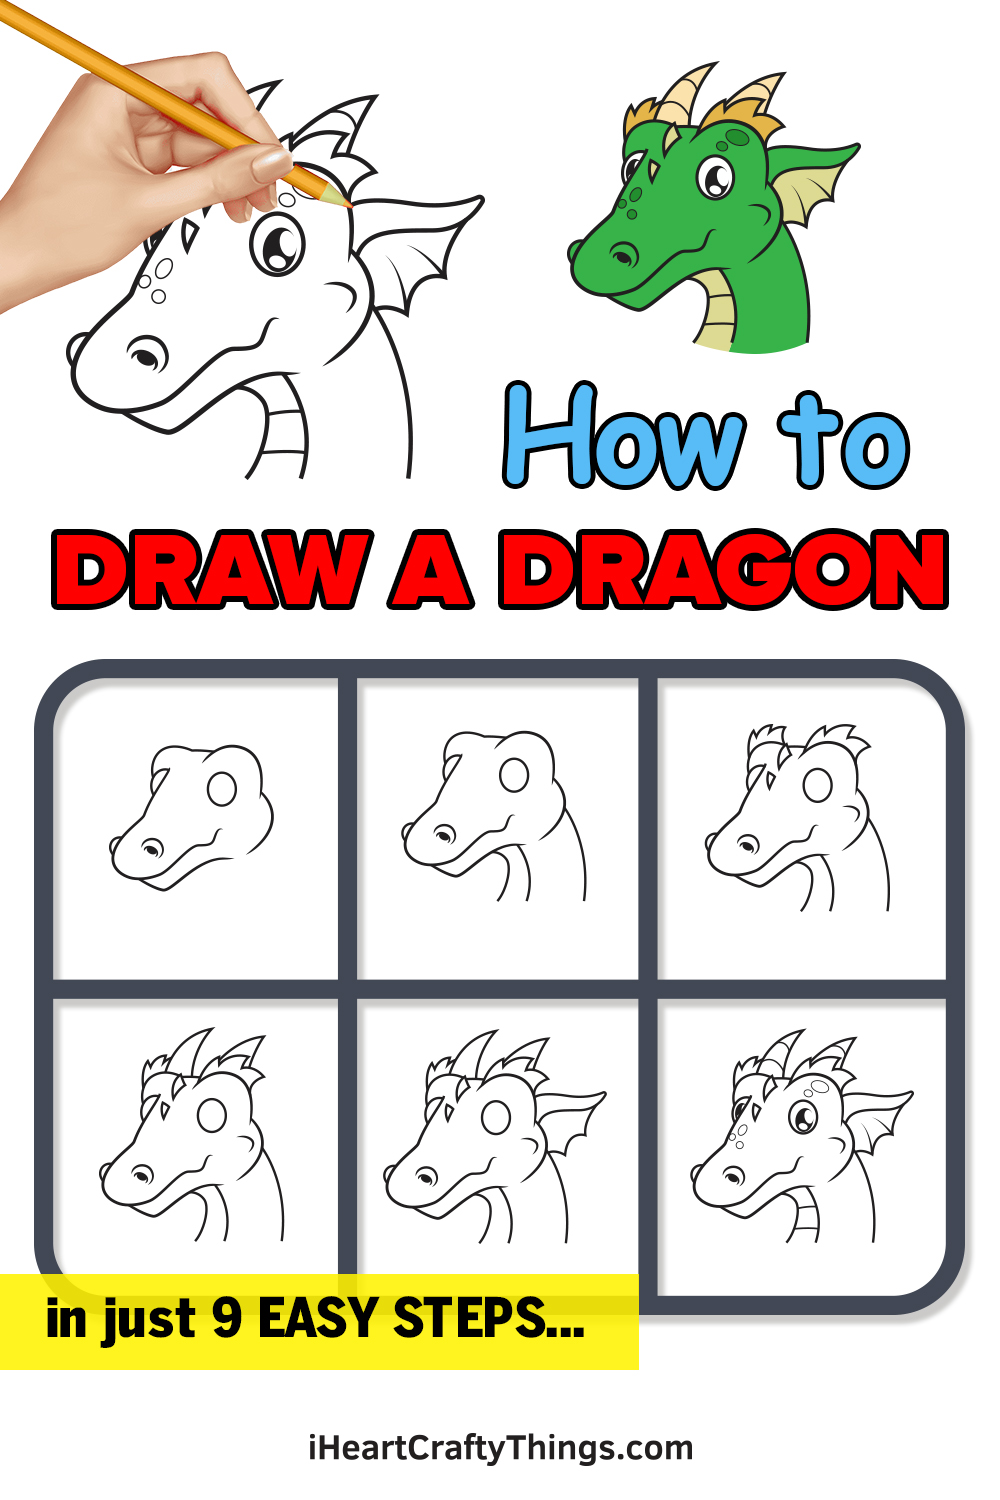 how to draw a dragon in 9 easy steps